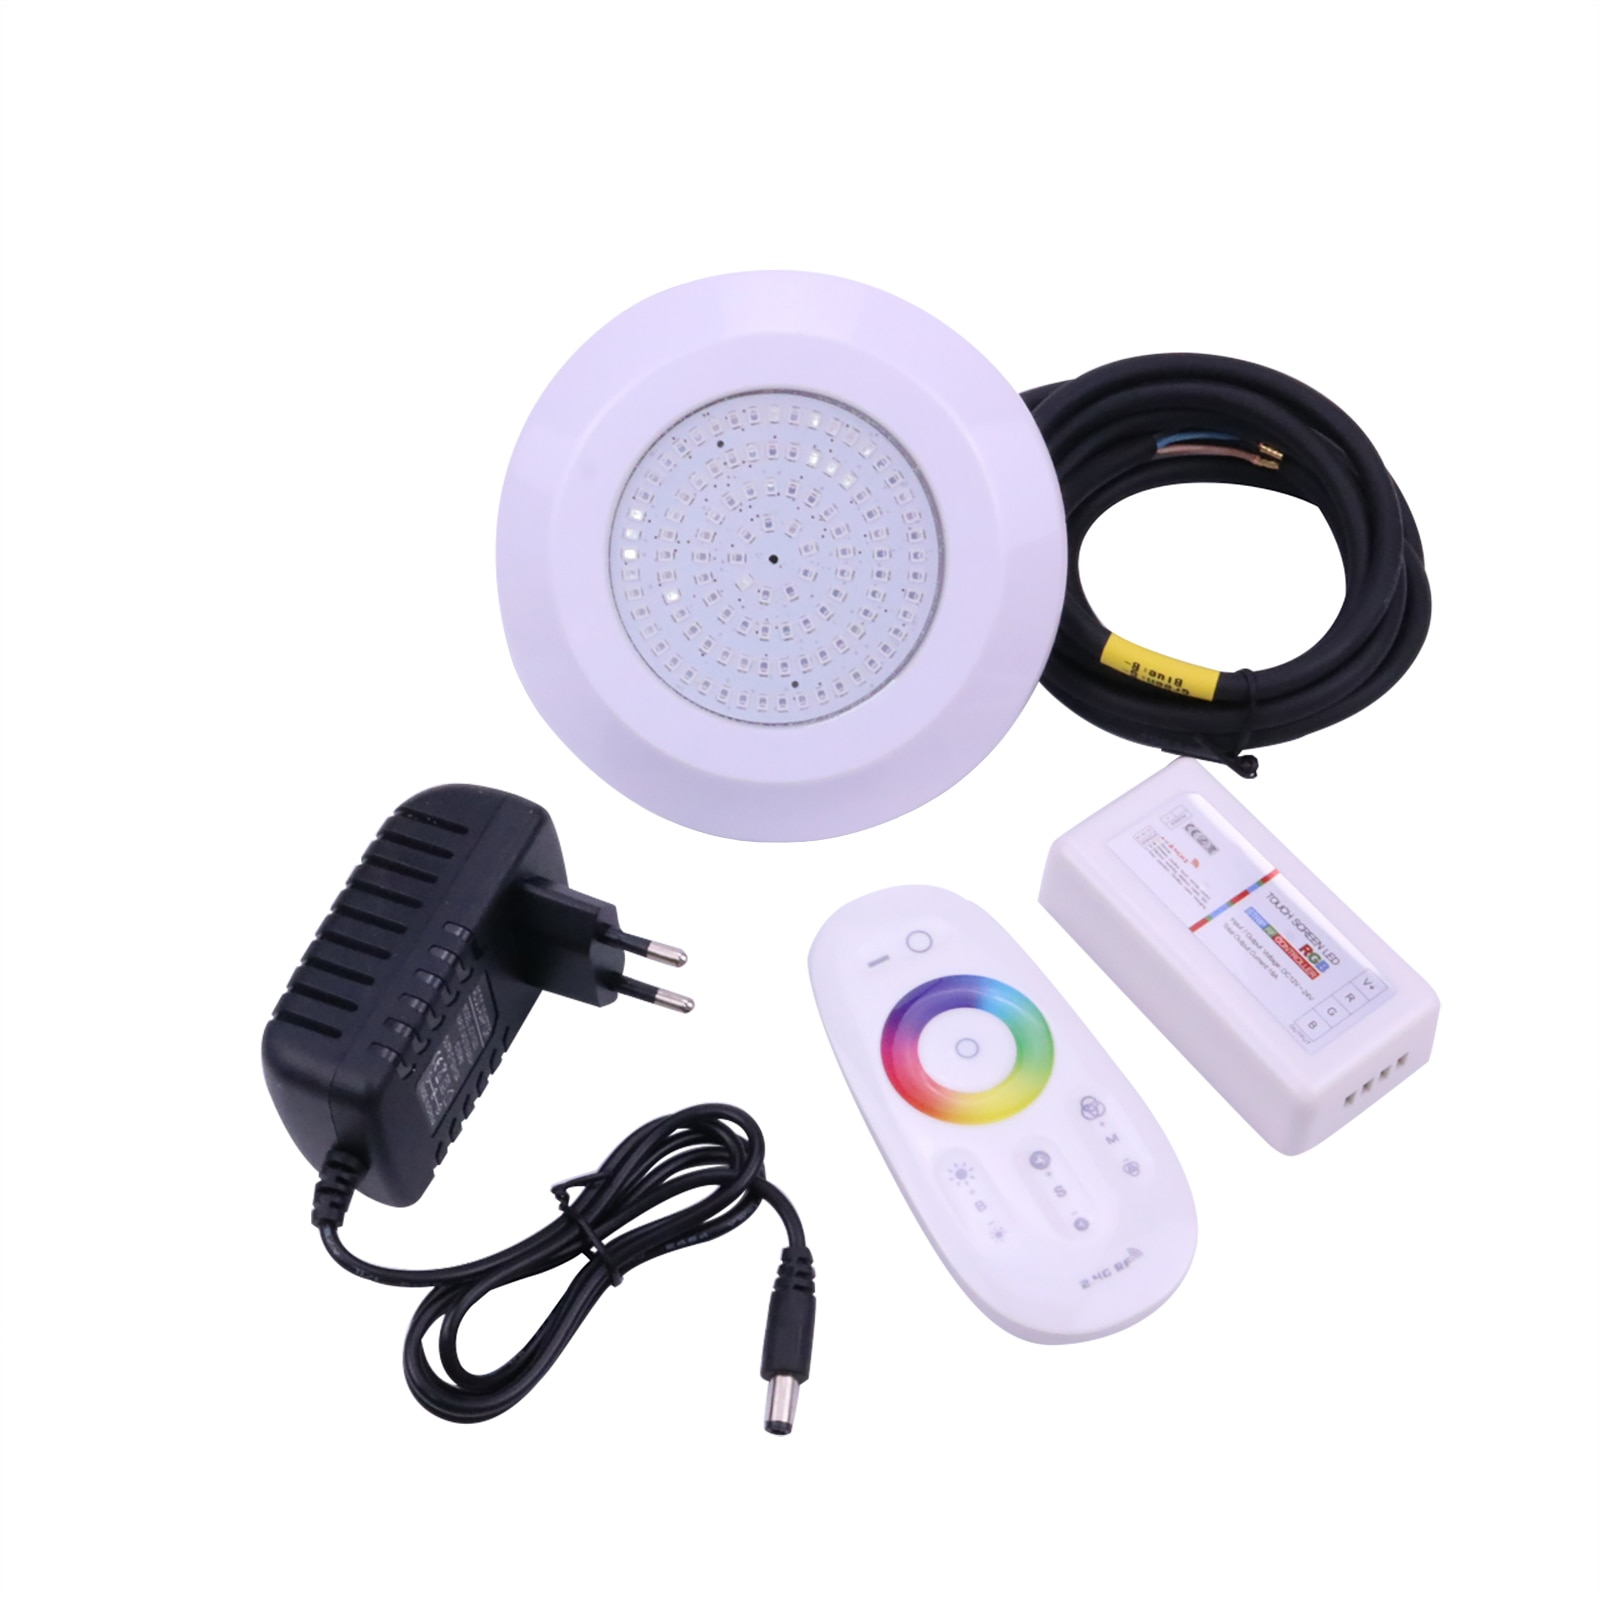 RGB LED Pool Light Mini 130 * 15mm PC Material DC 12V 10W LED Pond Light IP68 Underwater Lamp with Remote Controller enlarge